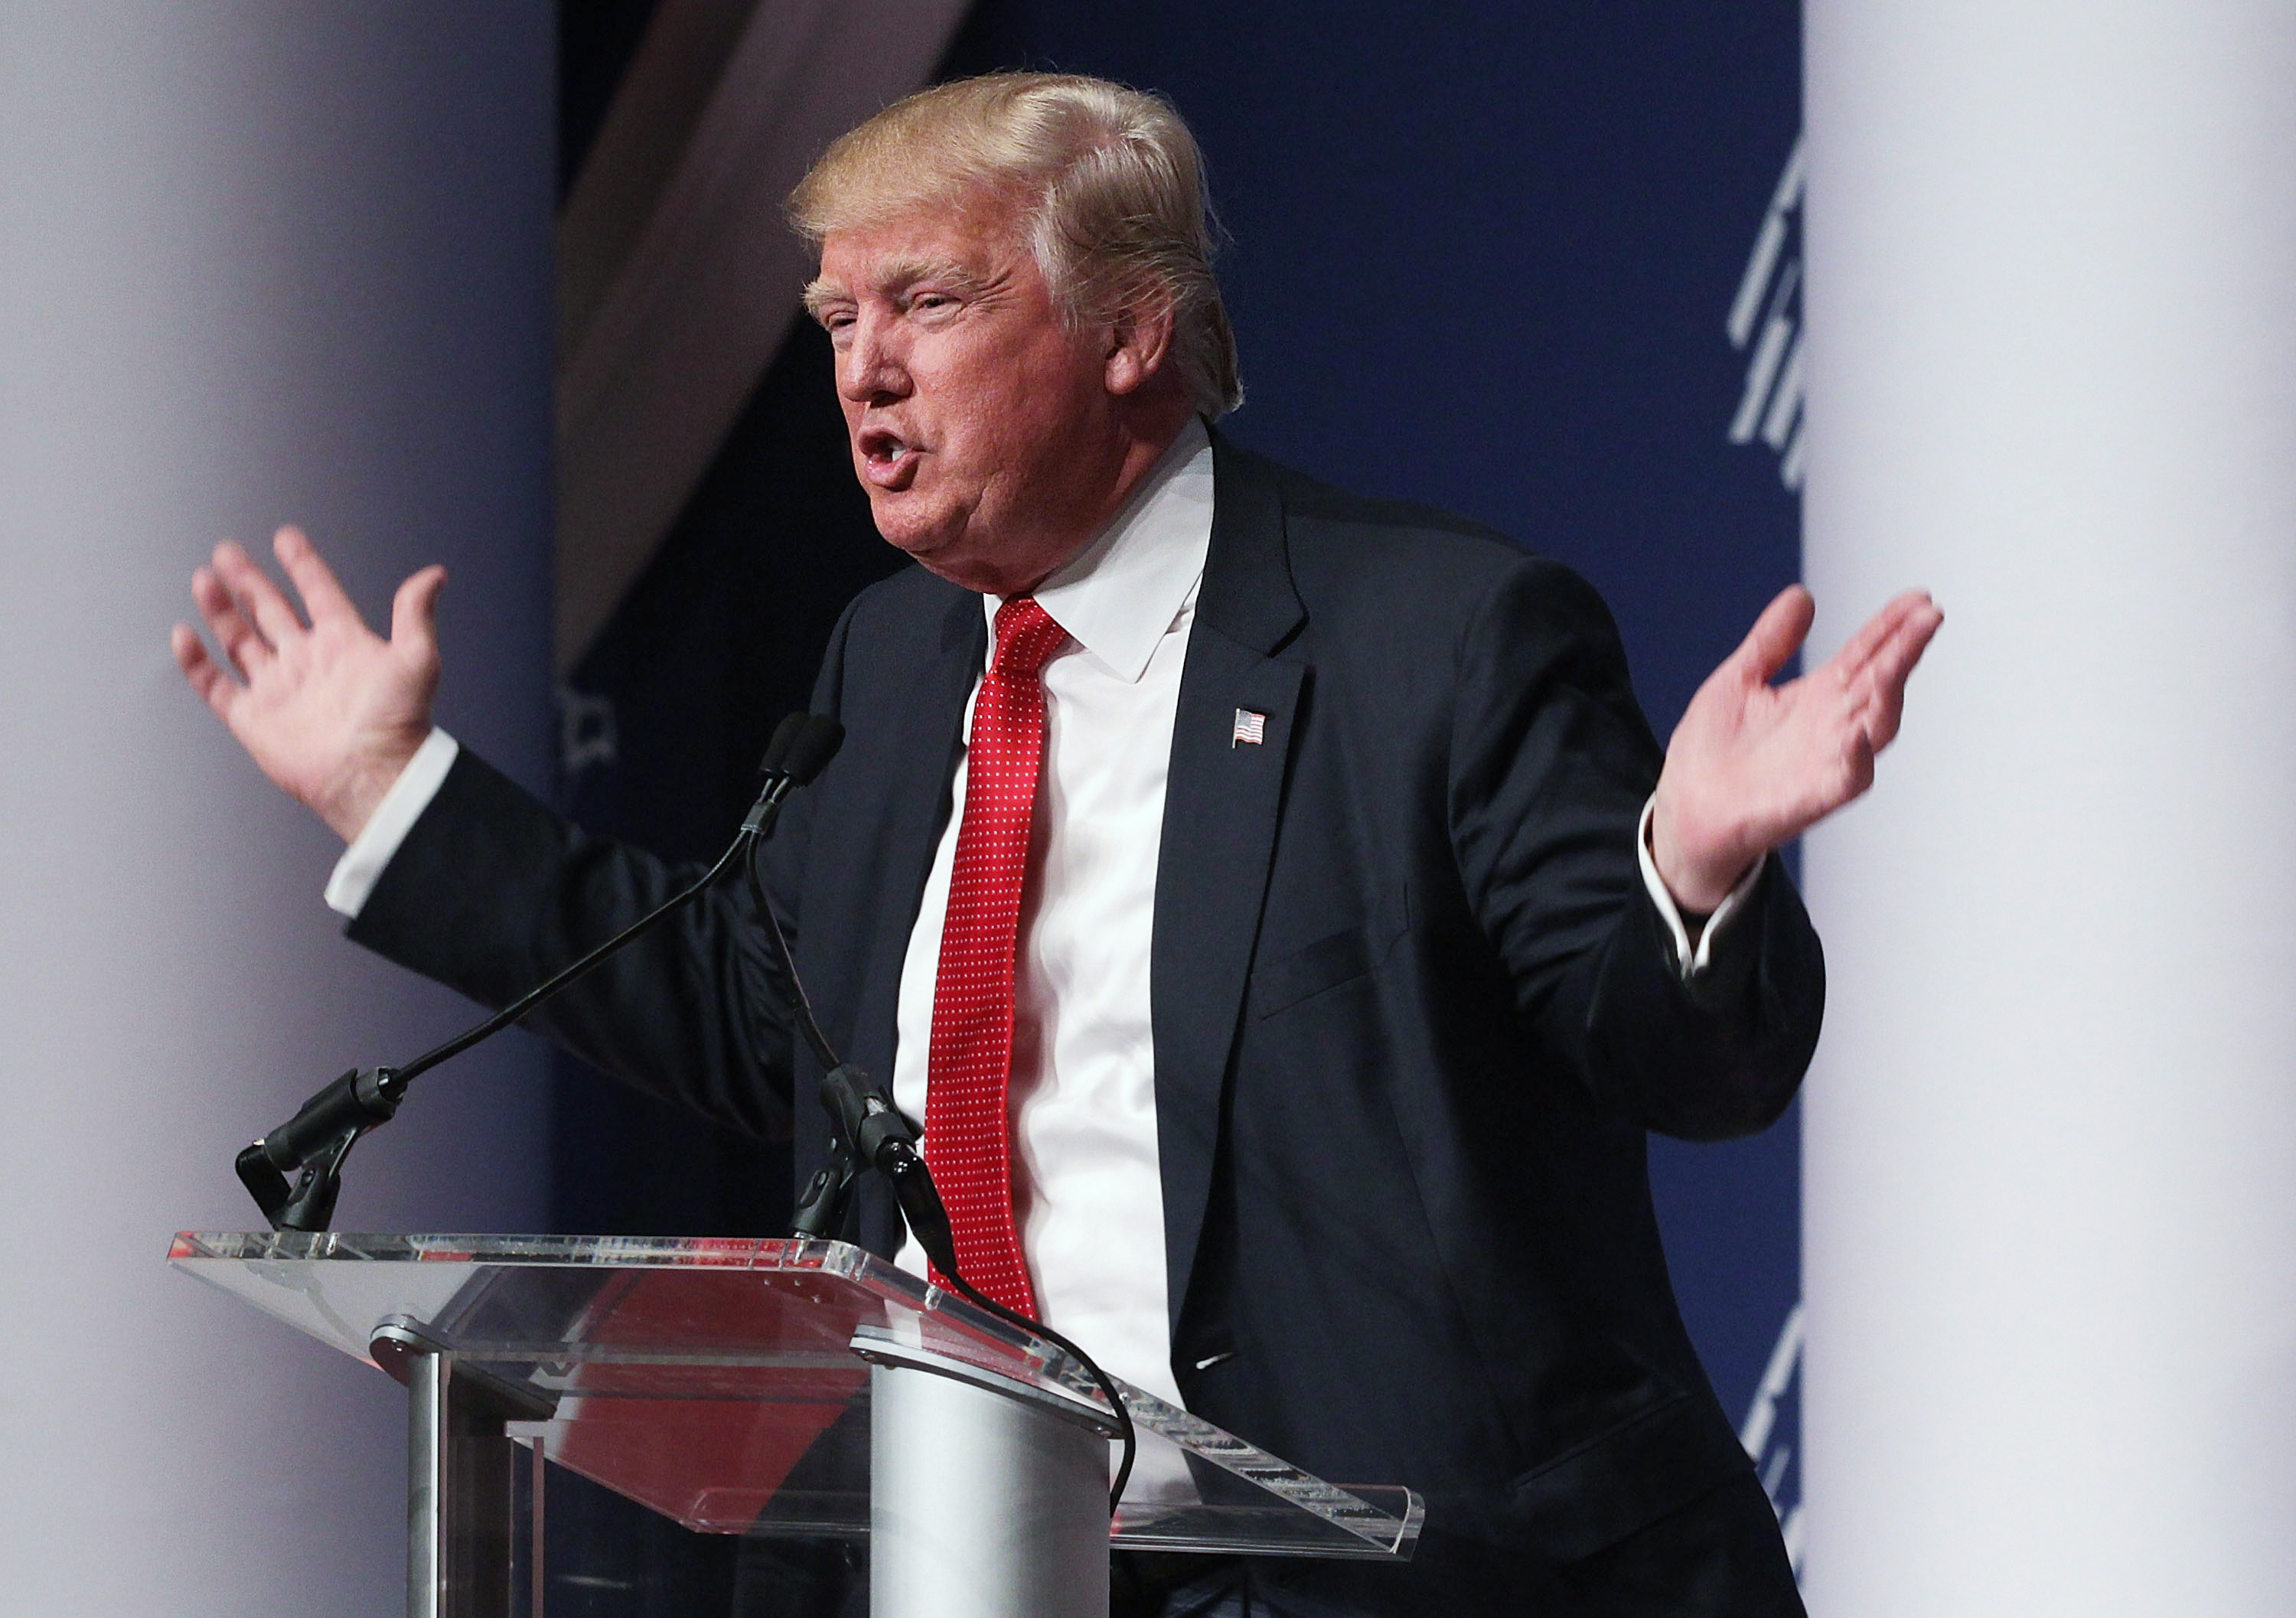 Republican presidential candidate Donald Trump addressing the Republican Jewish Coalition on December 3, 2015.